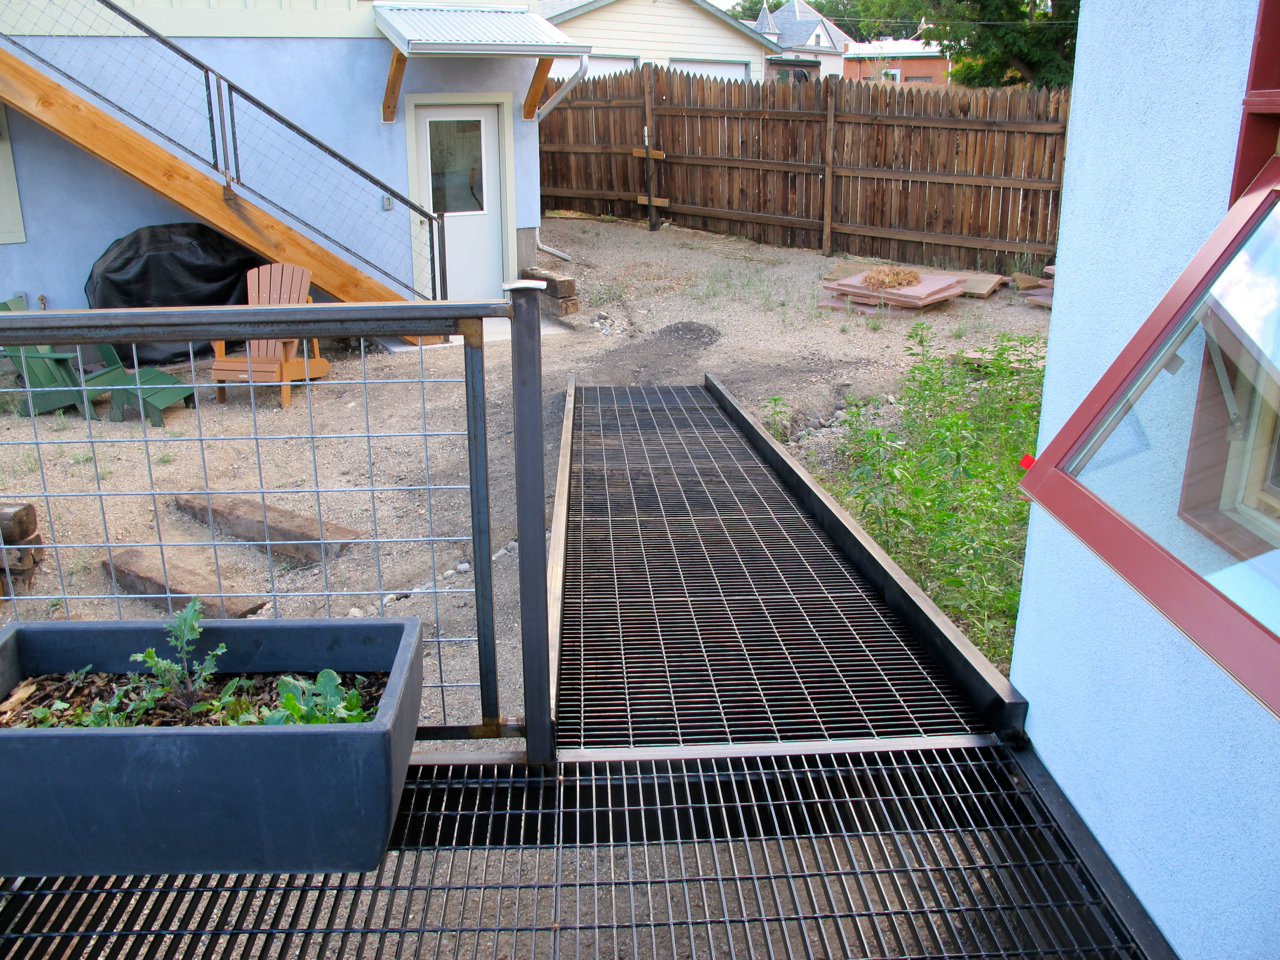 Steel grate ramp leading from the front deck to the side garage door.